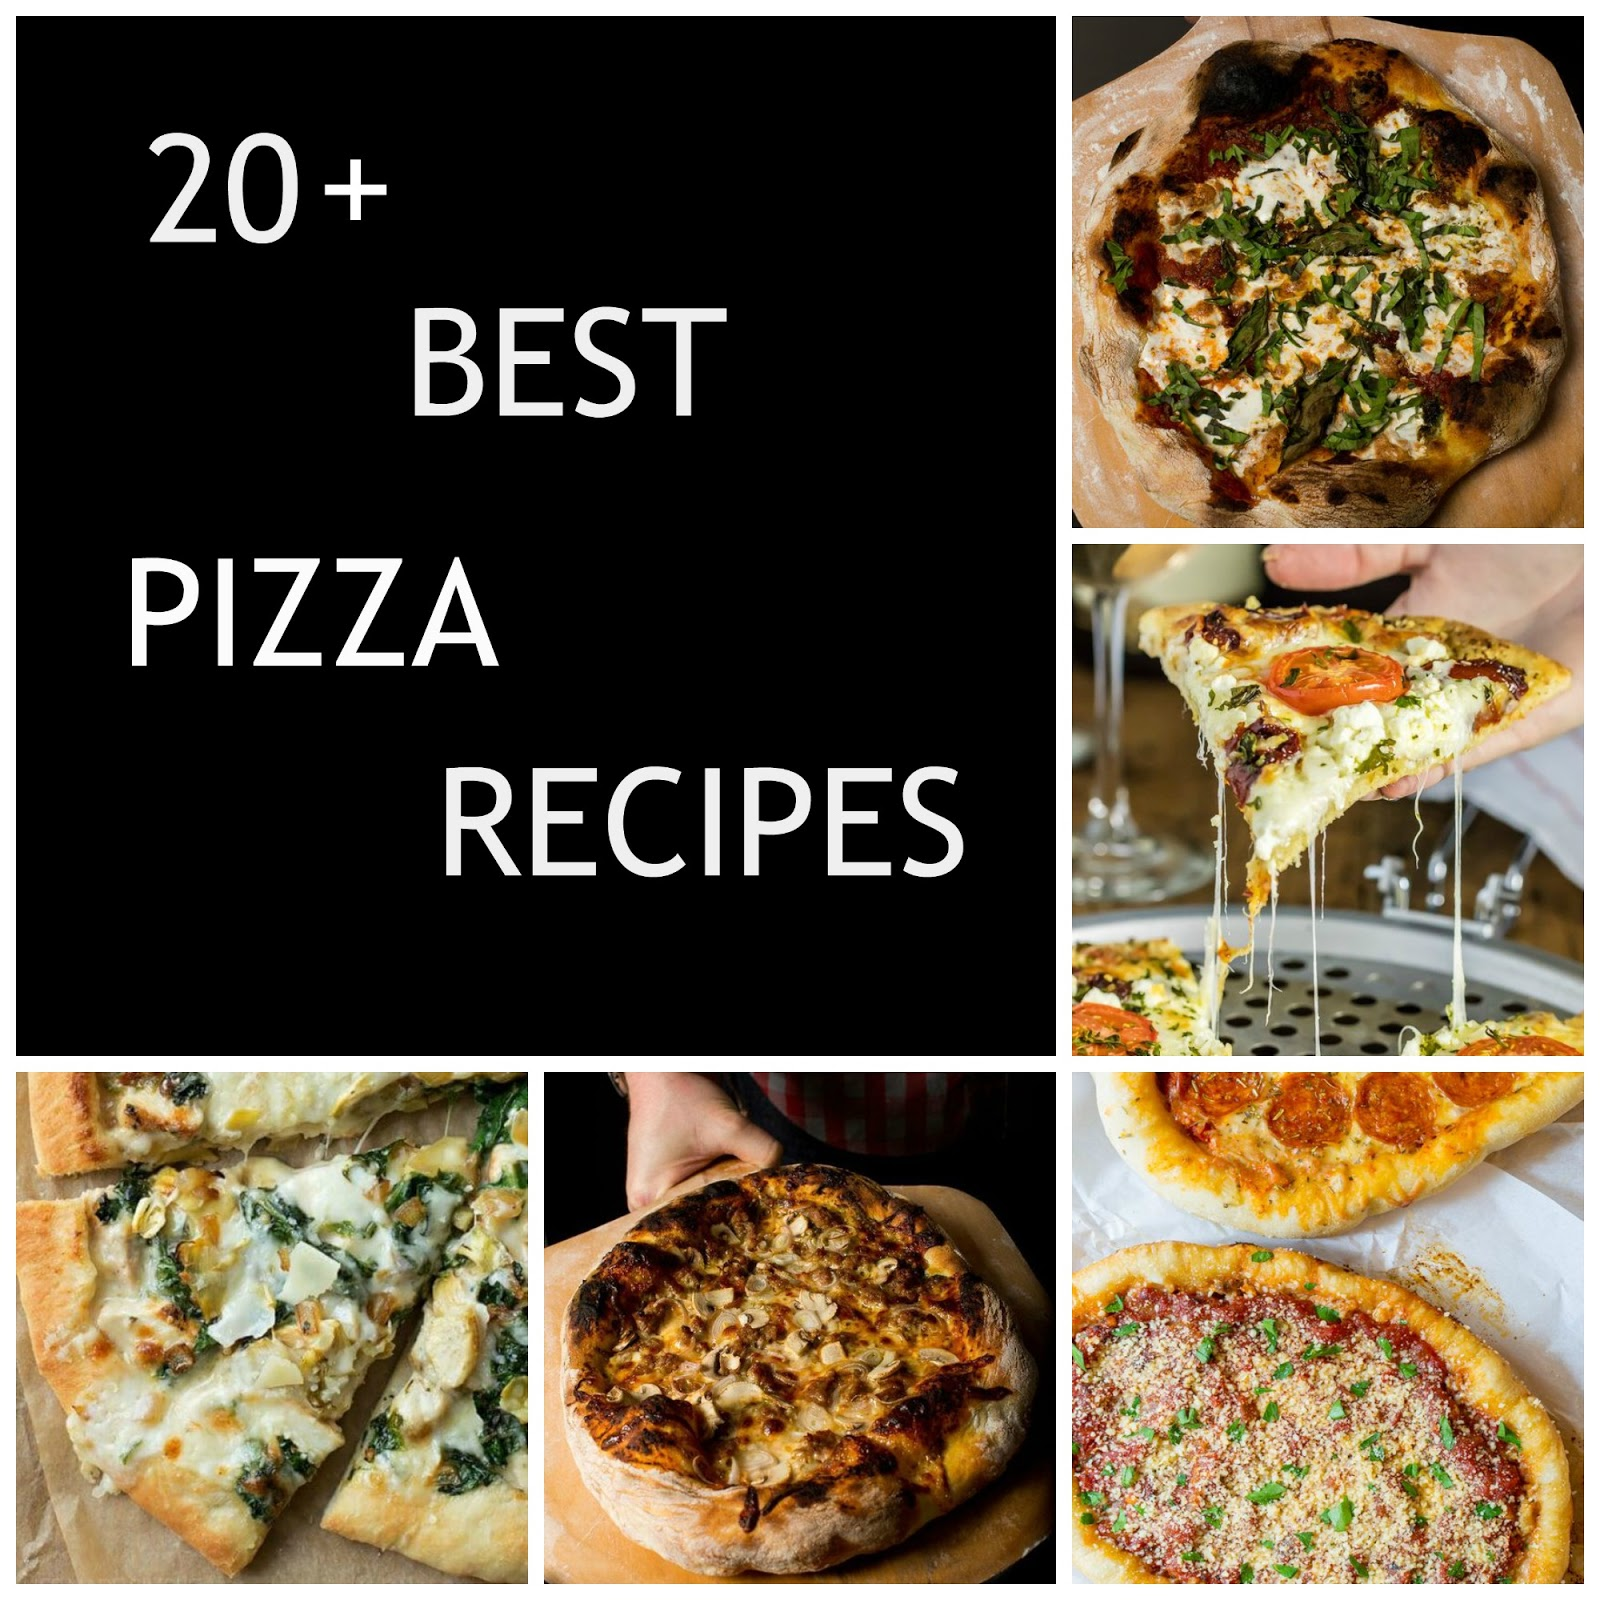 The best homemade pizza recipes to be found on Pinterest!